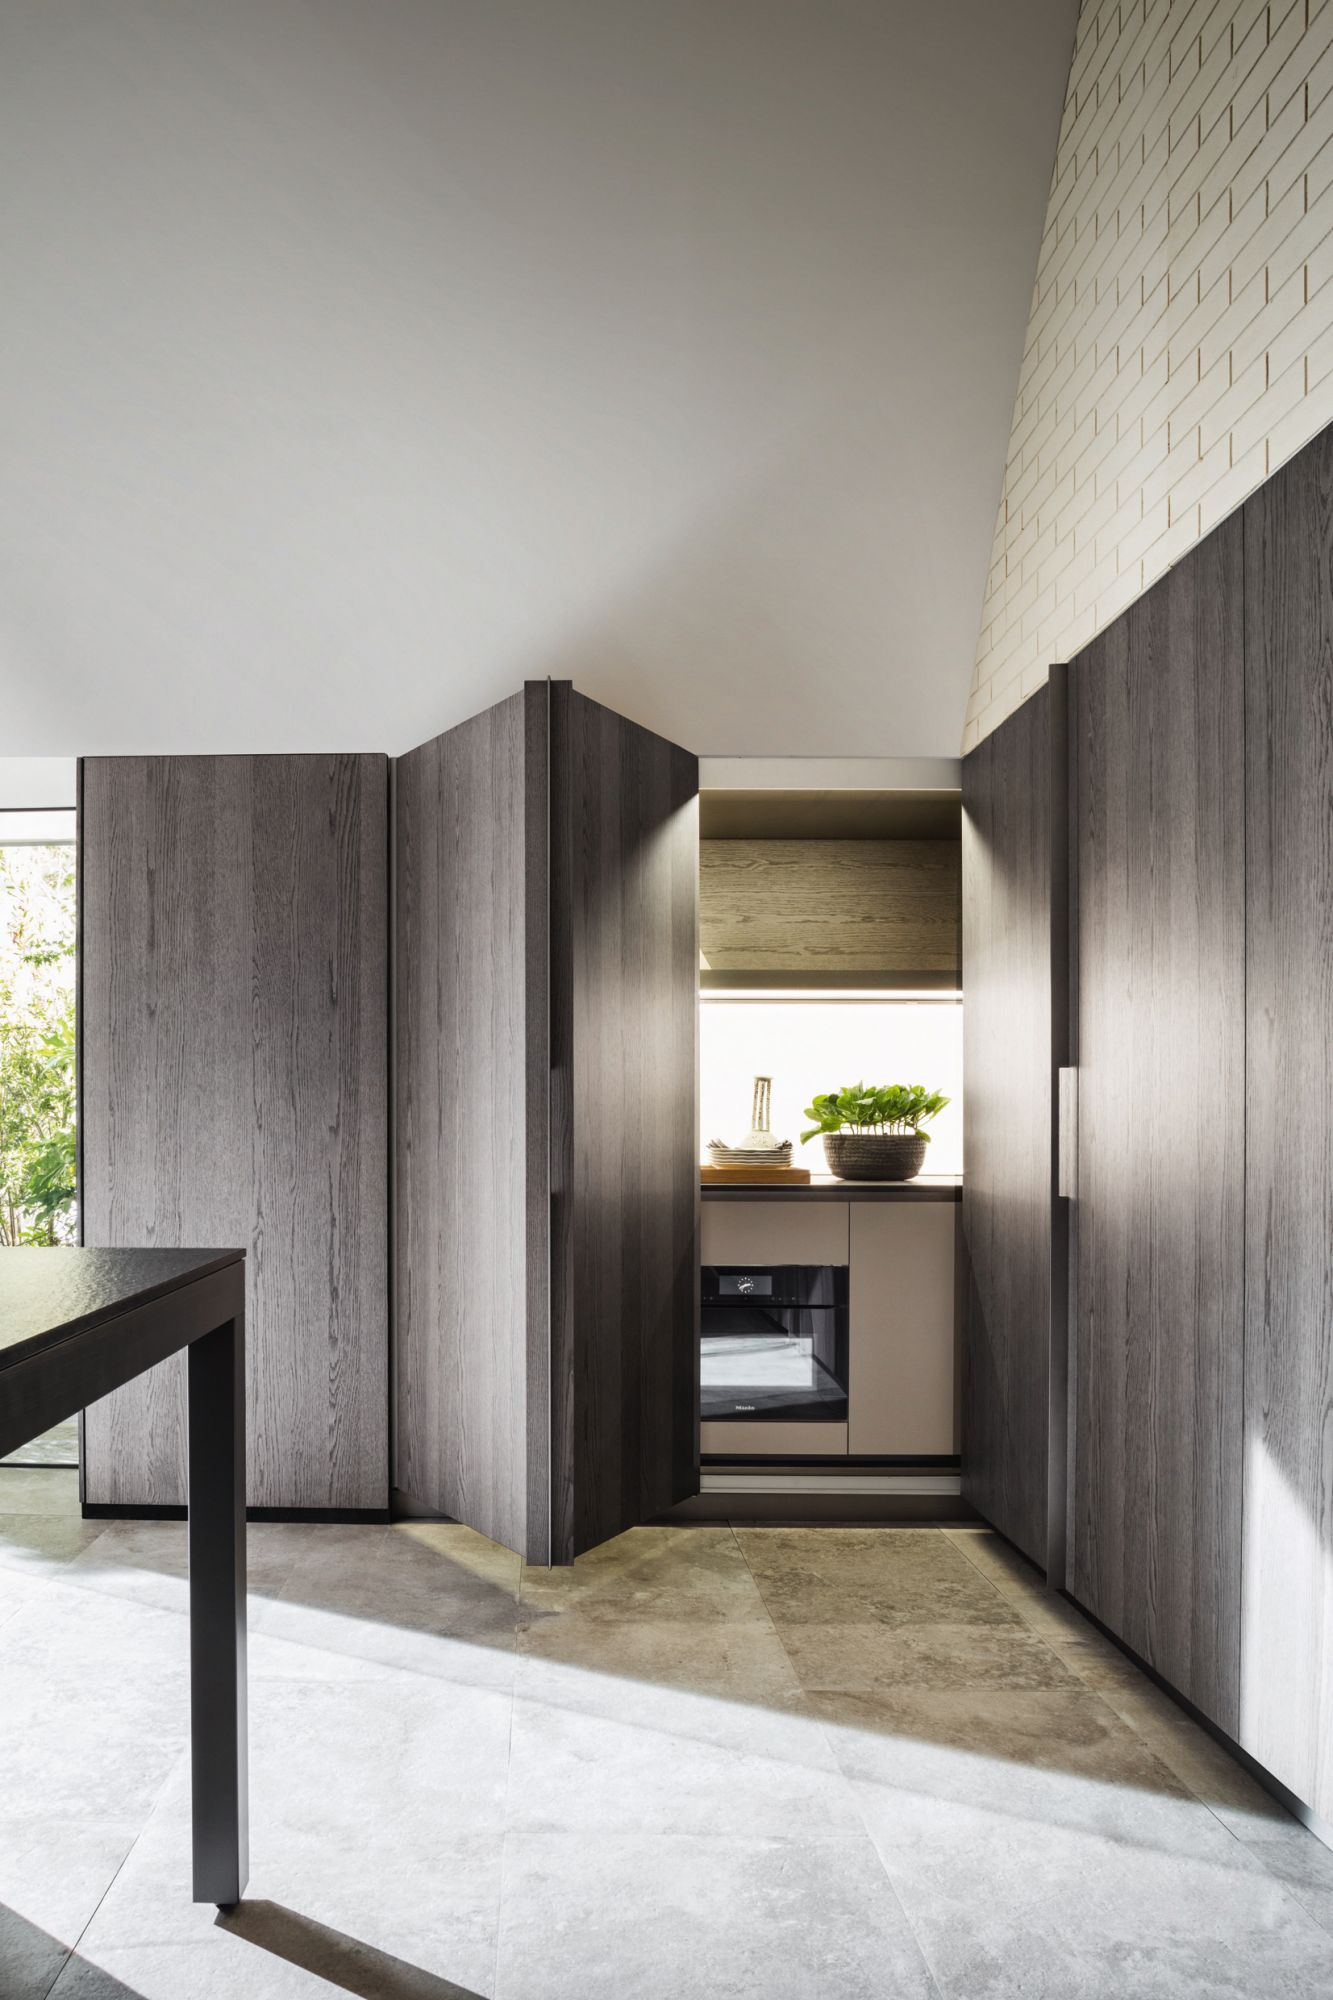 The Molteni&C | Dada Tivali kitchen system features sliding doors that can conceal the kitchen counter when it is not in use